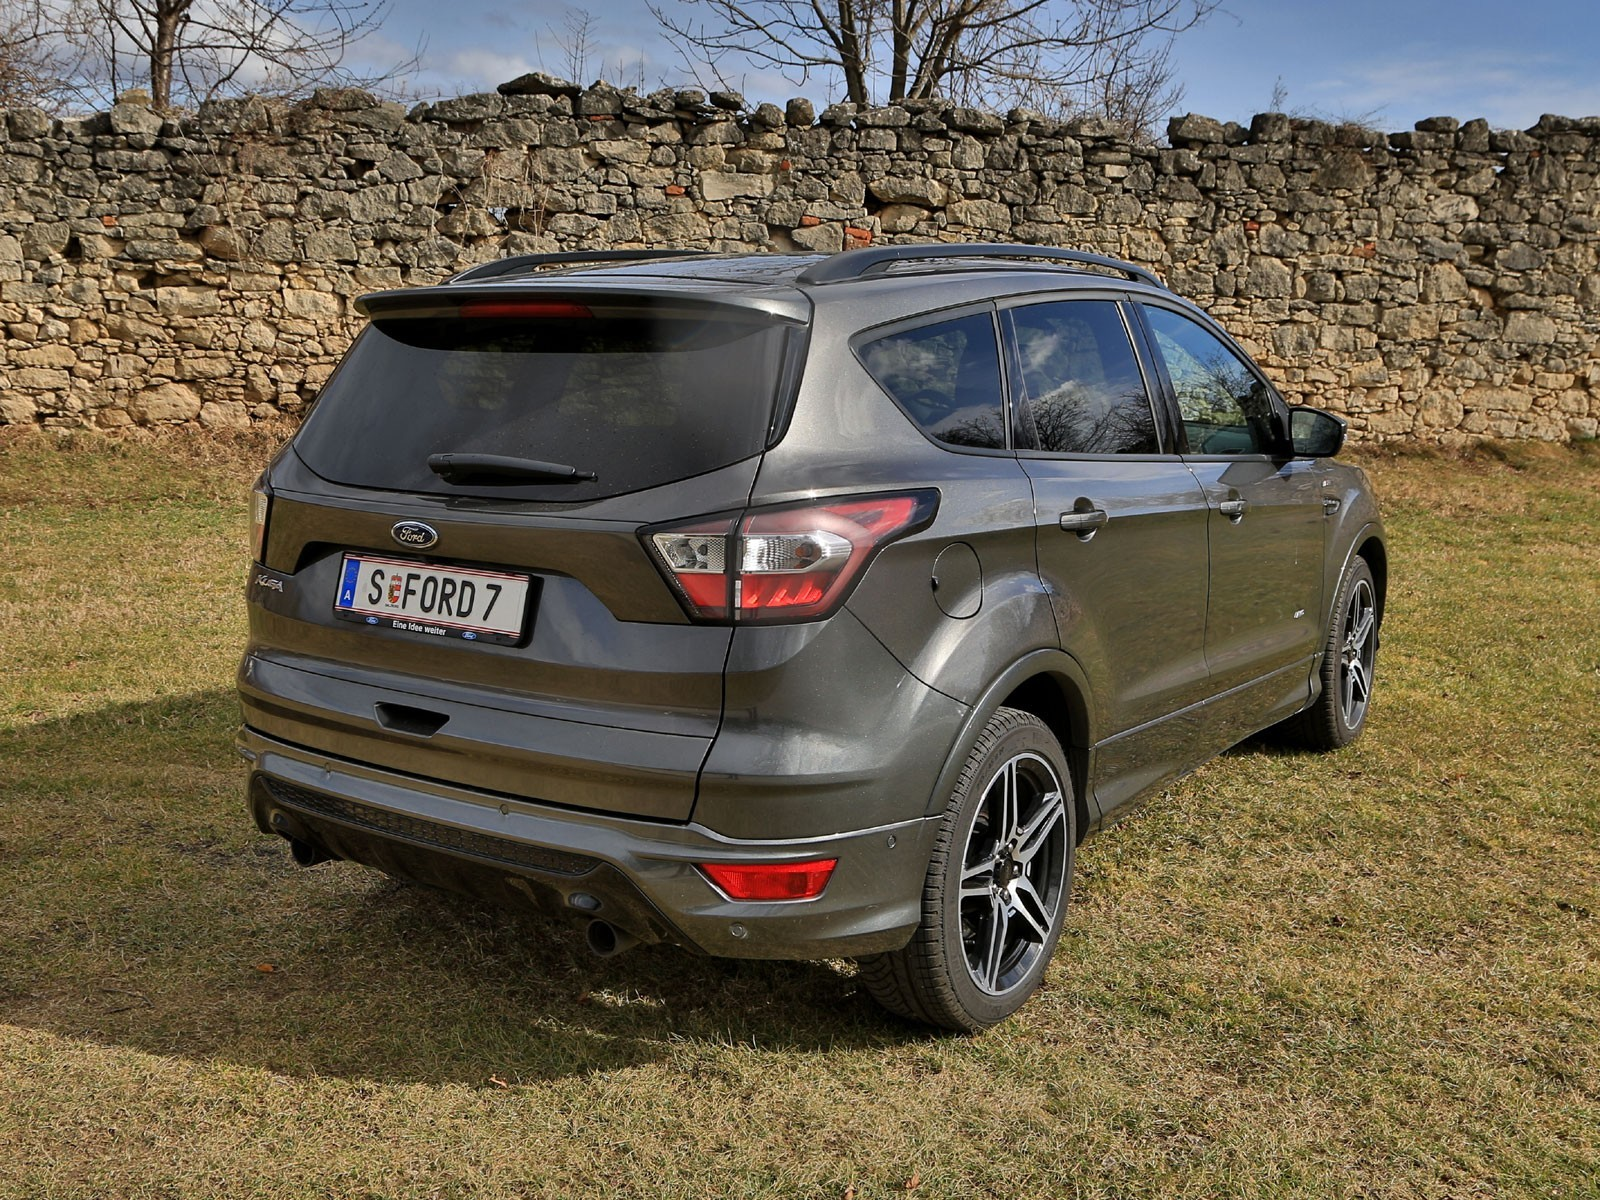 foto ford kuga 2 0 tdci 150 ps at awd st line testbericht. Black Bedroom Furniture Sets. Home Design Ideas